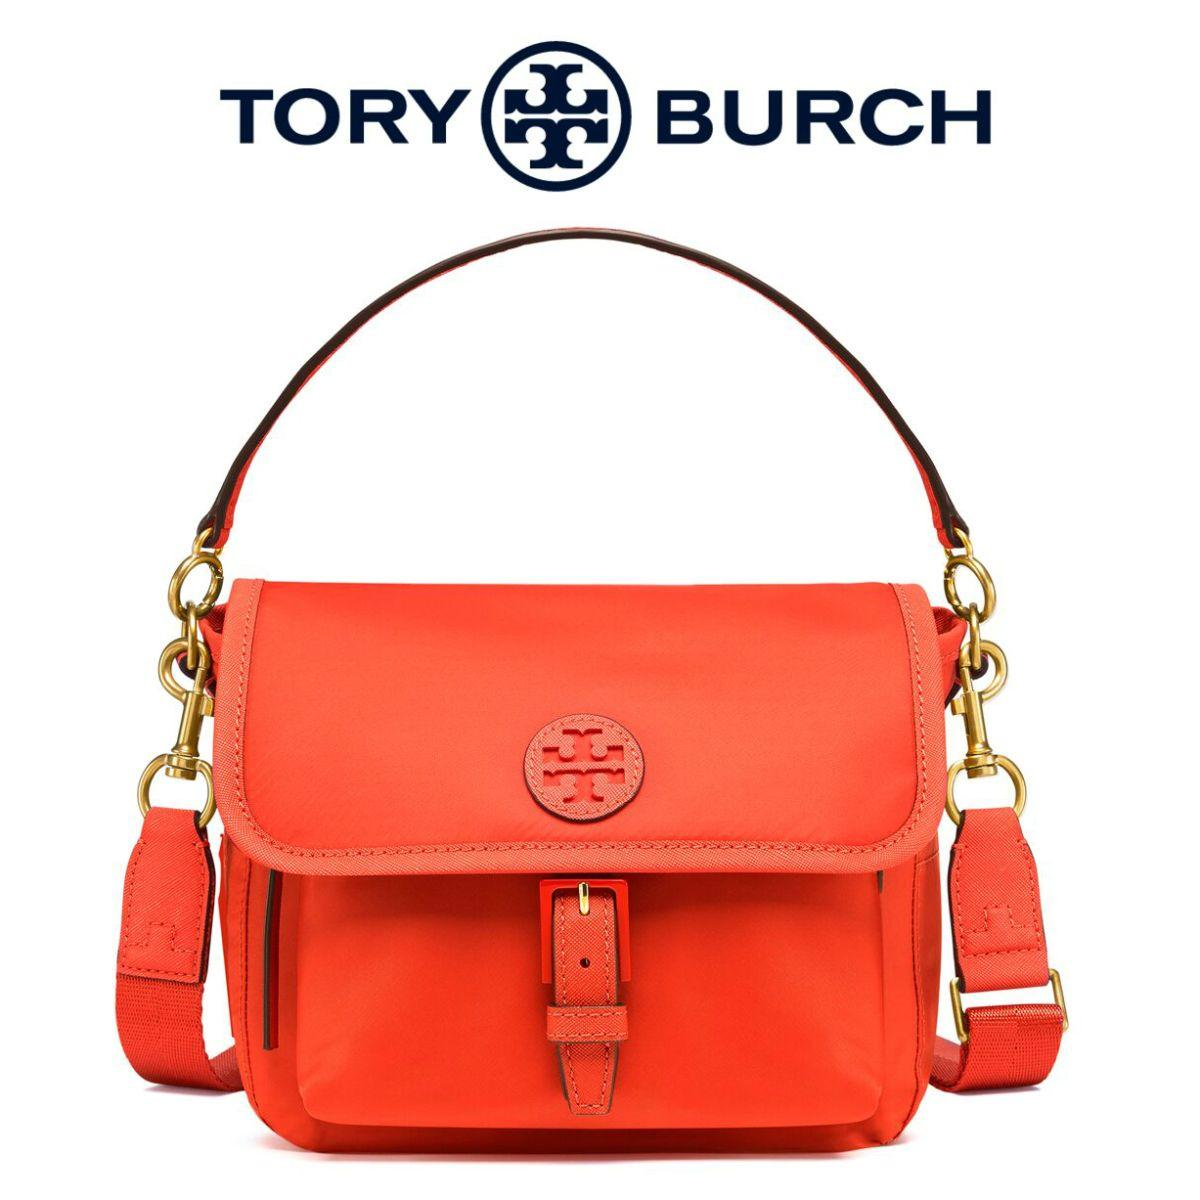 Tory burch coupon codes